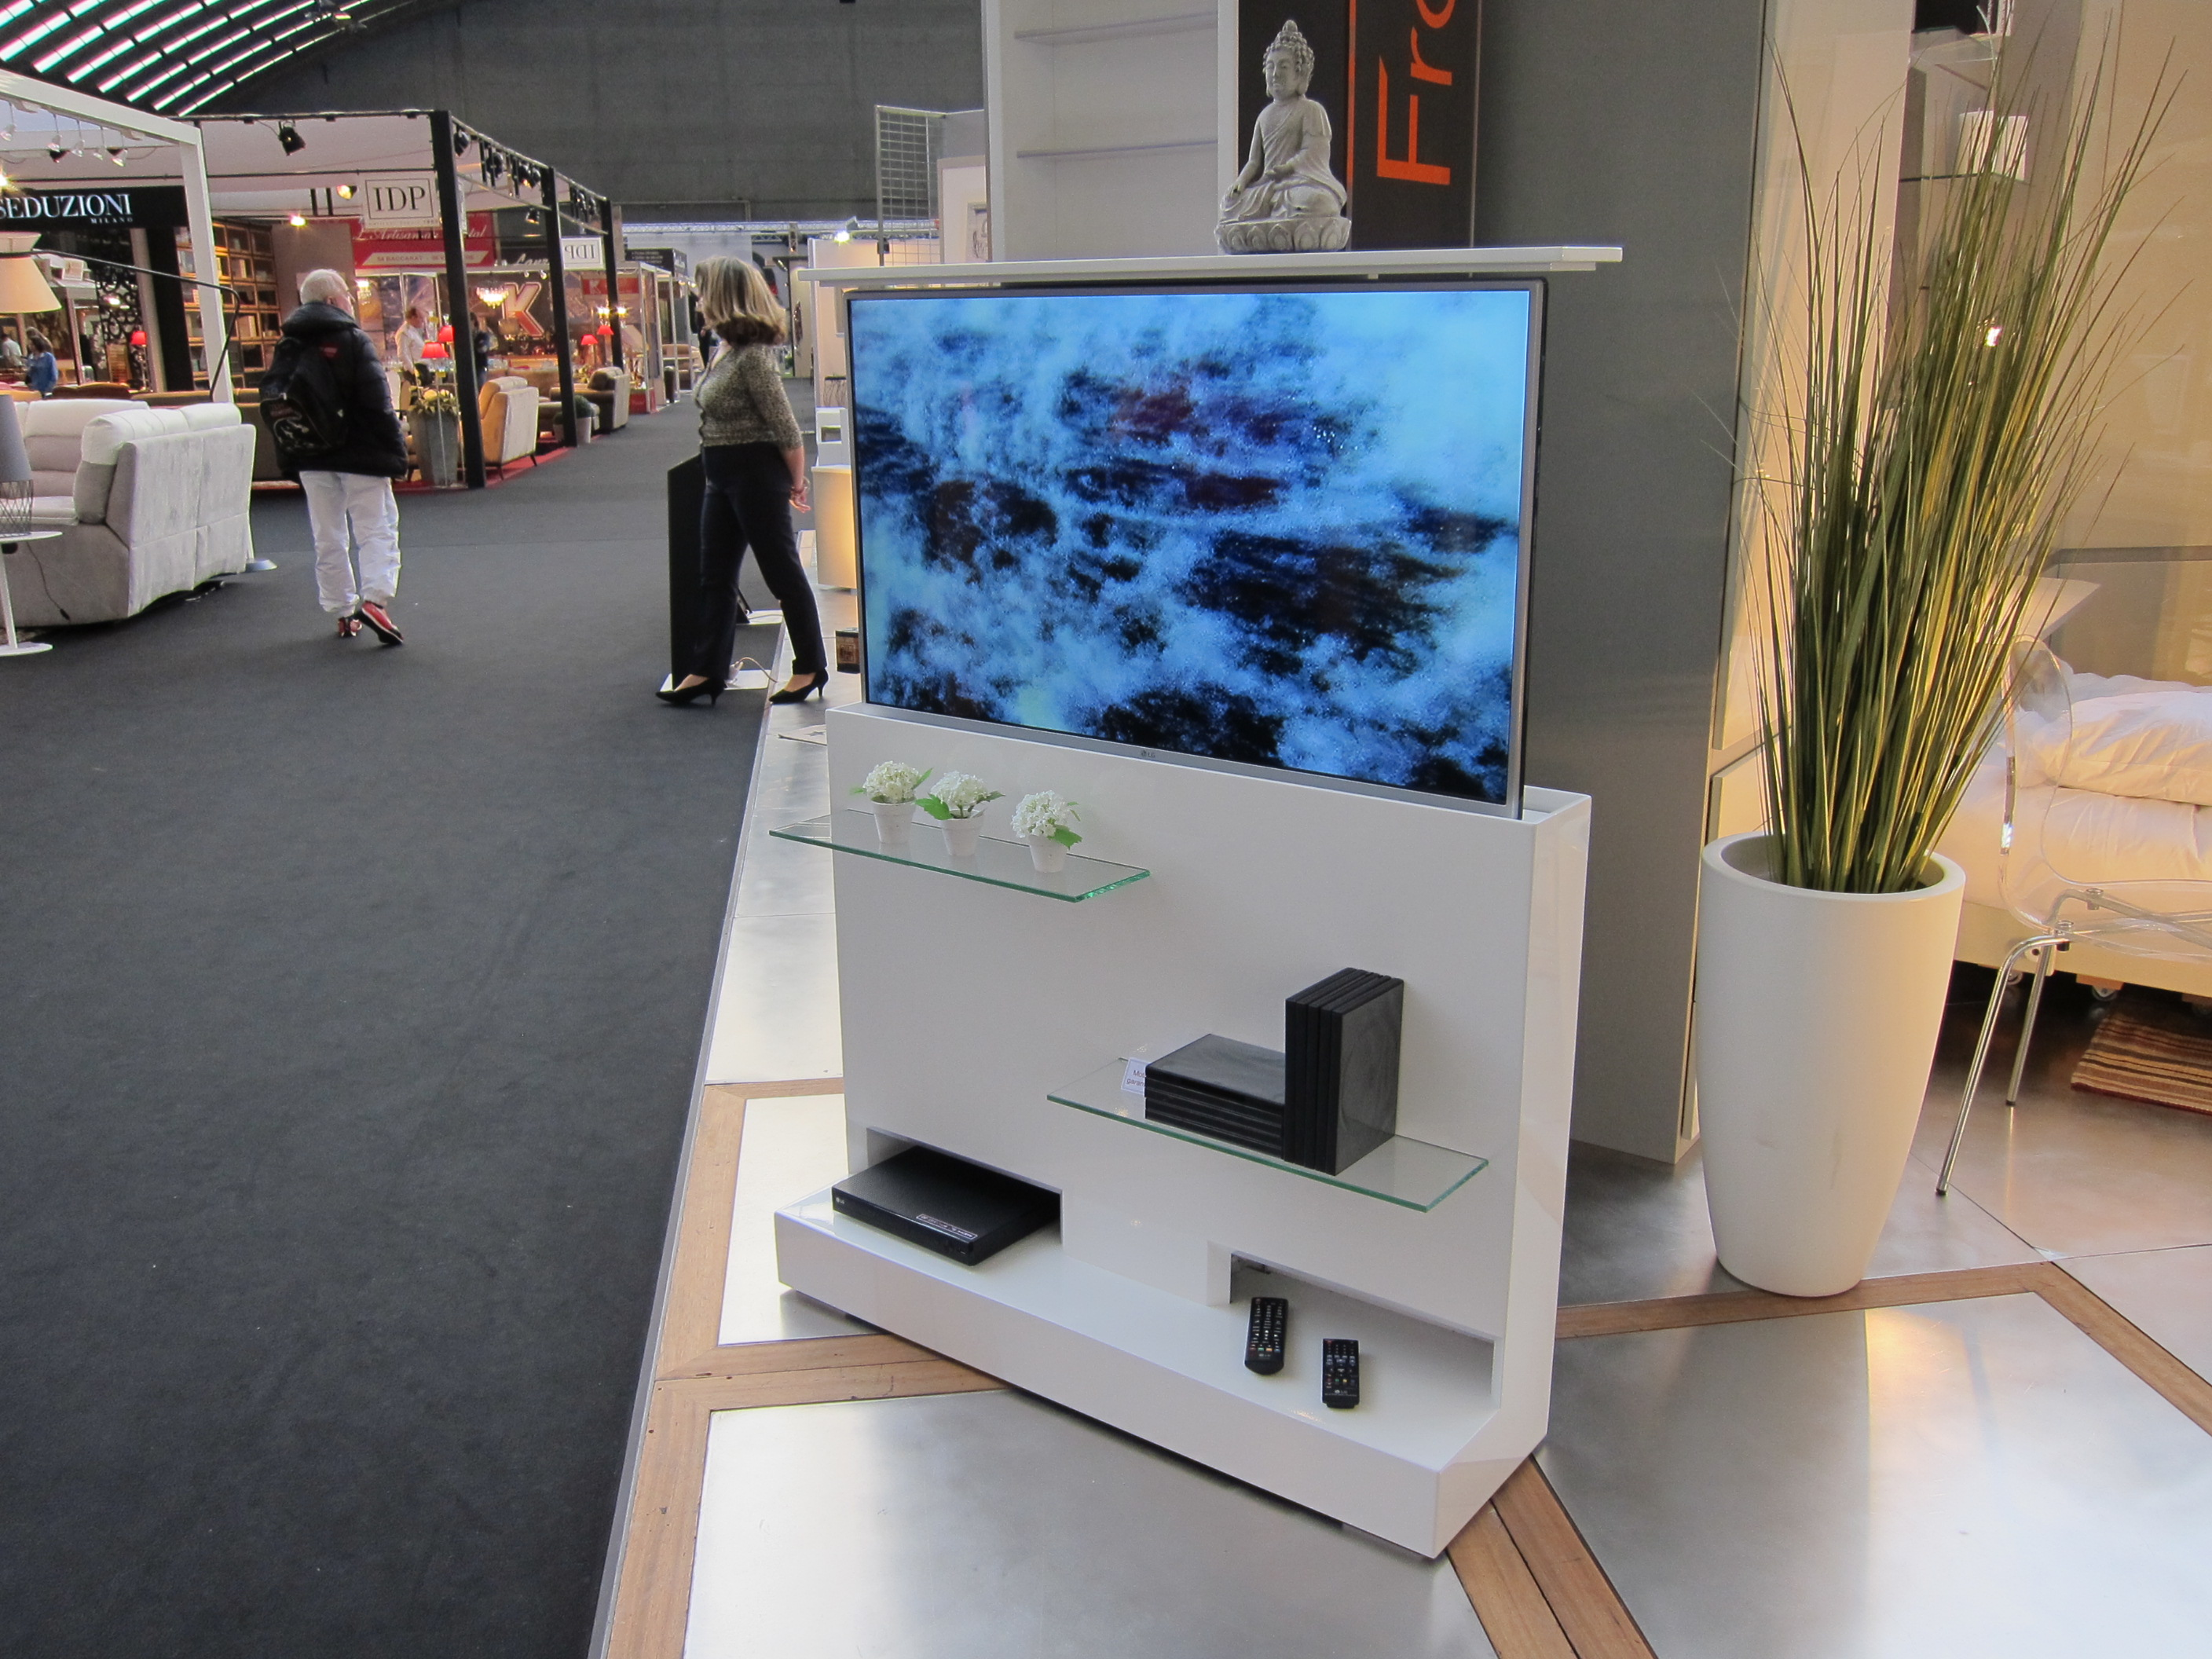 Tv Encastrable Dans Un Meuble - Le Mobilier Gain De Place Fran Ois Desile[mjhdah]http://www.gianecchini.us/wp-content/uploads/images/1516574022-meuble-tv-escamotable-16-et-meuble-tele-escamotable-des-photos-meuble-tv-encastrable.jpg